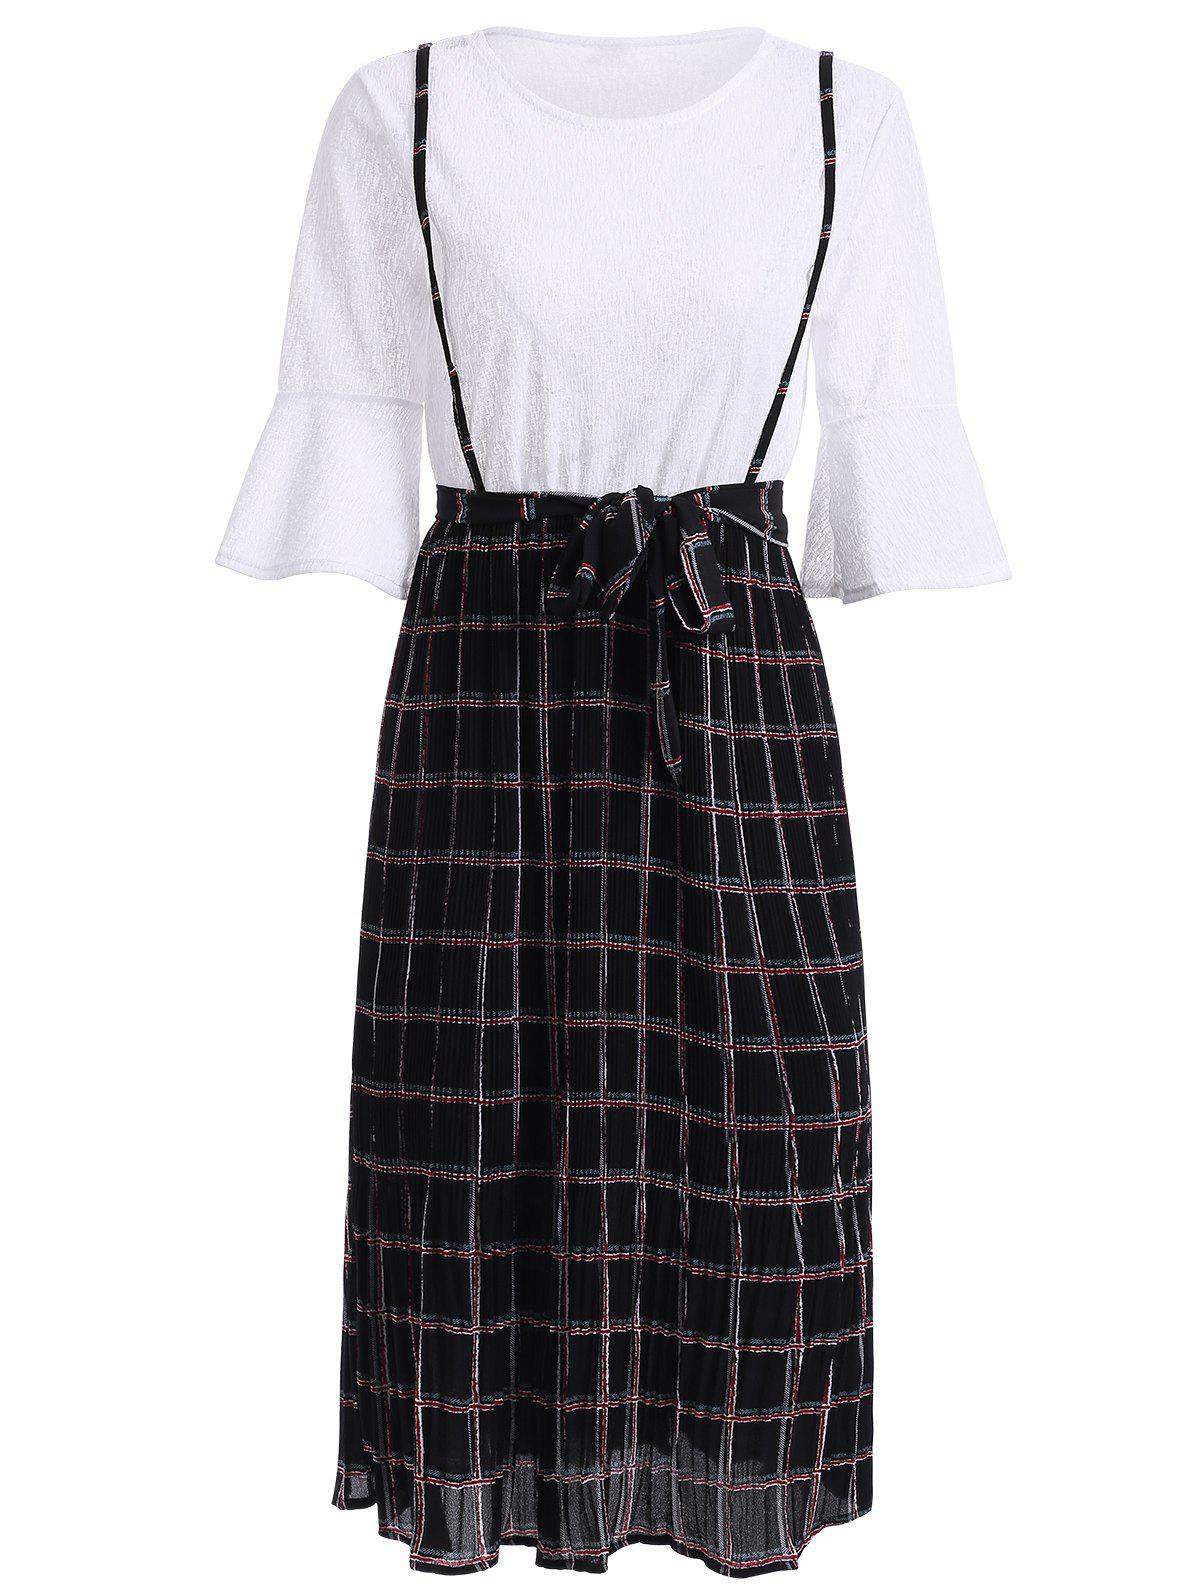 Stylish Flare Sleeve Plaid Fake Twinset Dress For Women - WHITE ONE SIZE(FIT SIZE XS TO M)